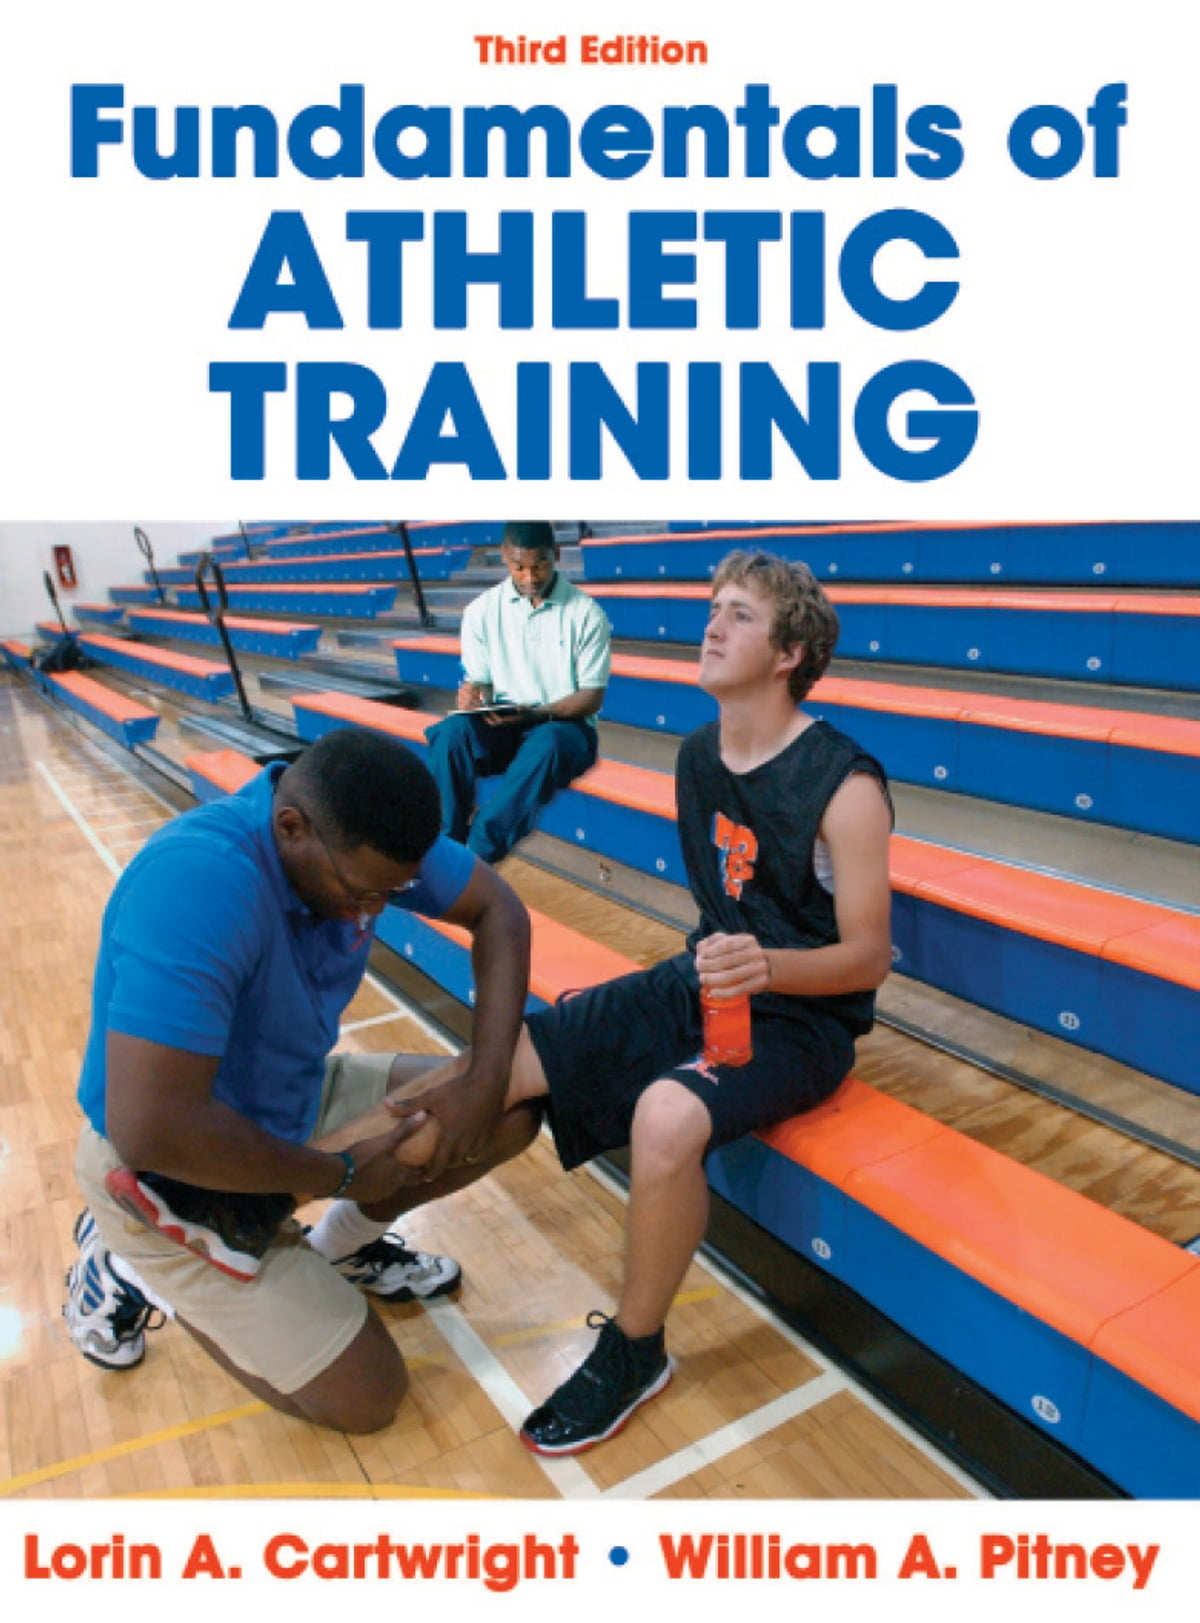 Fundamentals of Athletic Training 3rd Edition eBook by Cartwright ...